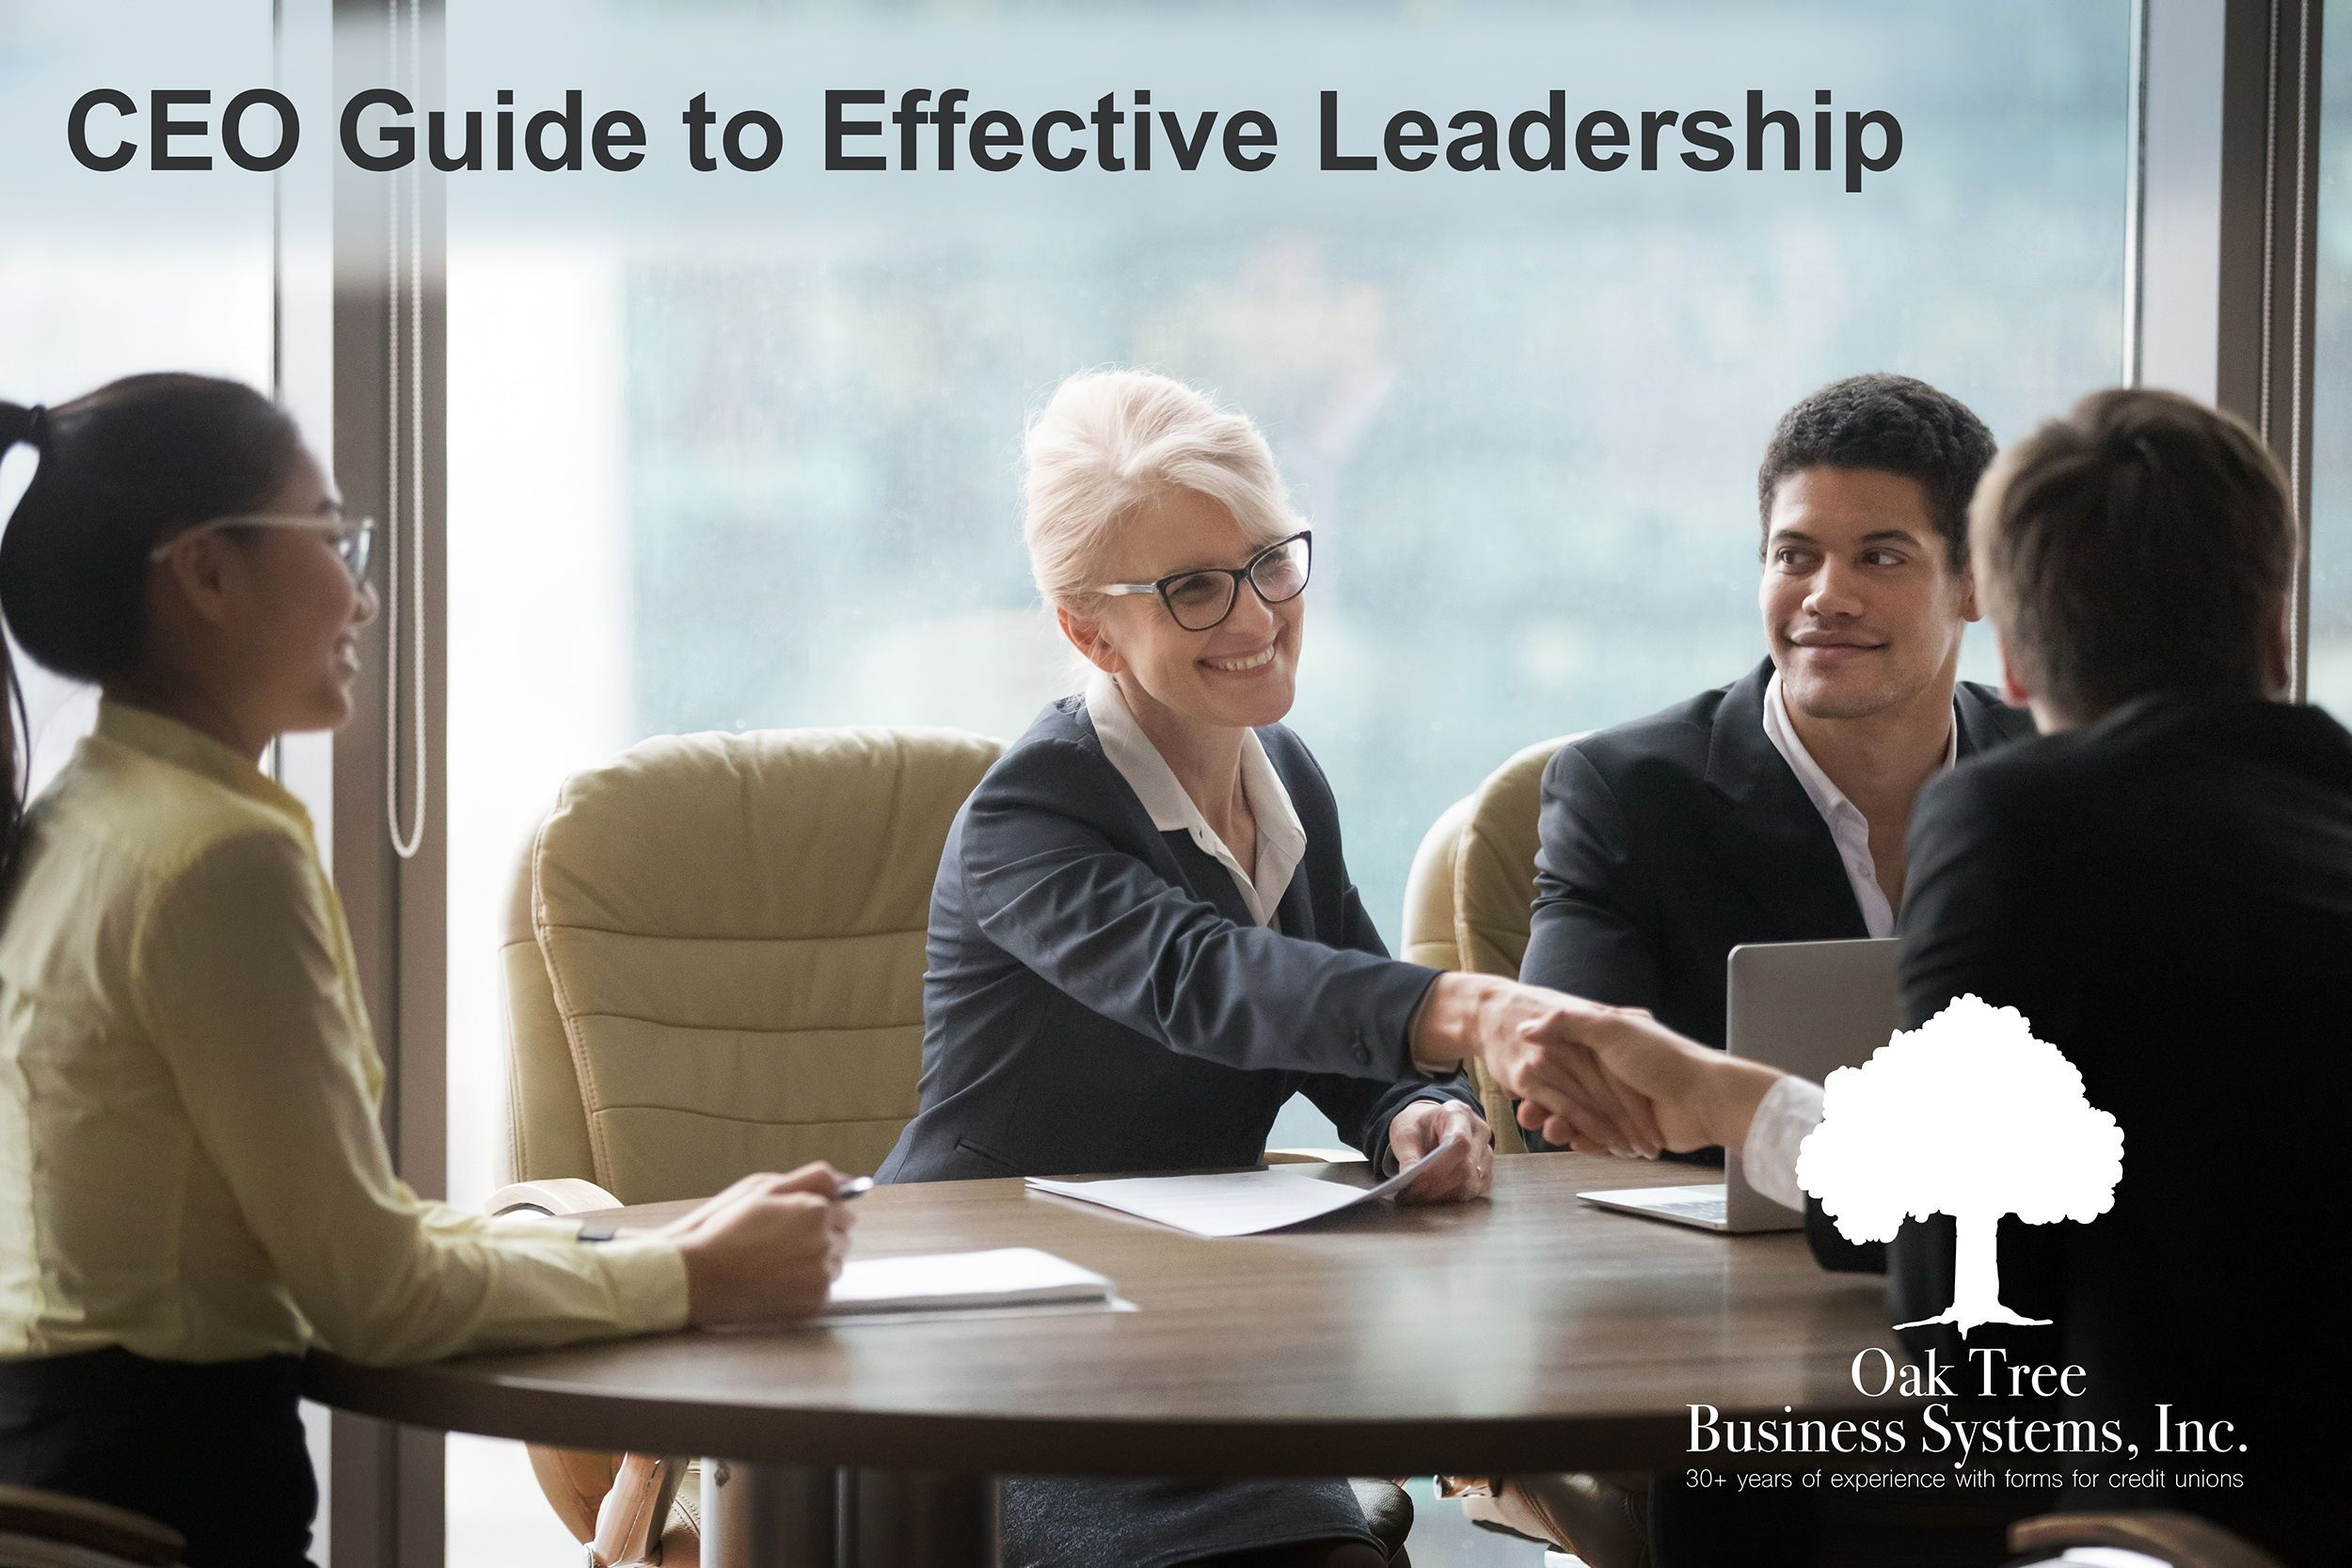 Oak tree in cues about ceo guide to effective leadership